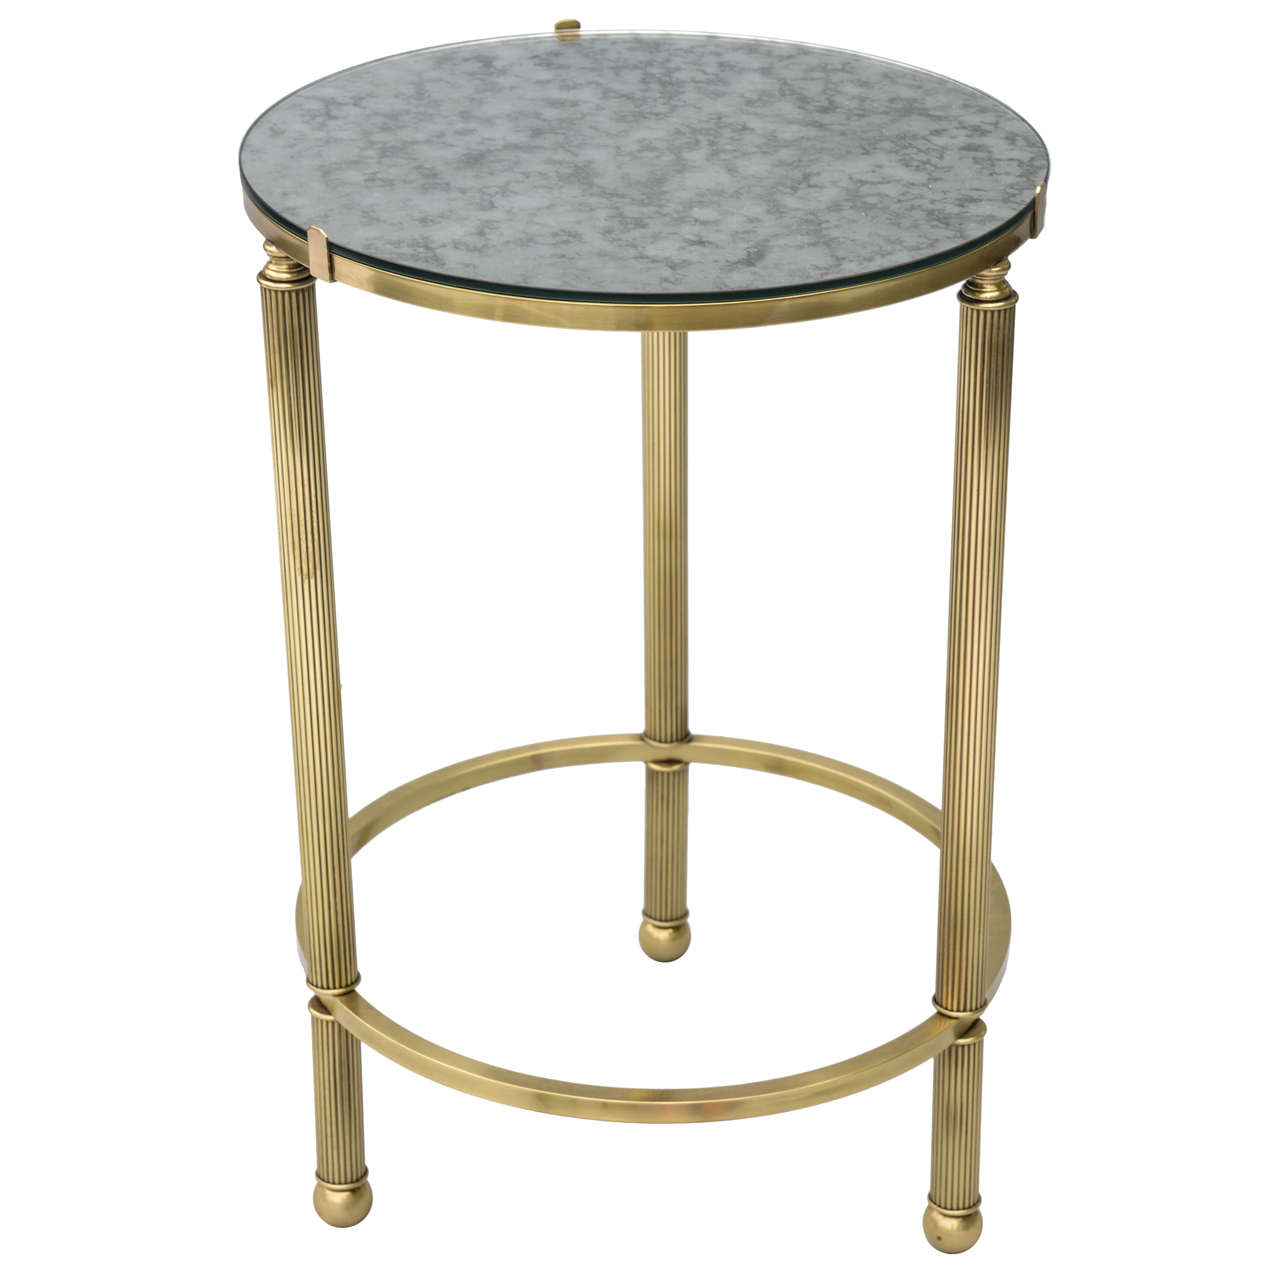 round brass accent table with mirrored top inch high stacking tables ikea target red exterior door threshold ashley furniture dining set cover patio chair white coffee glass wine